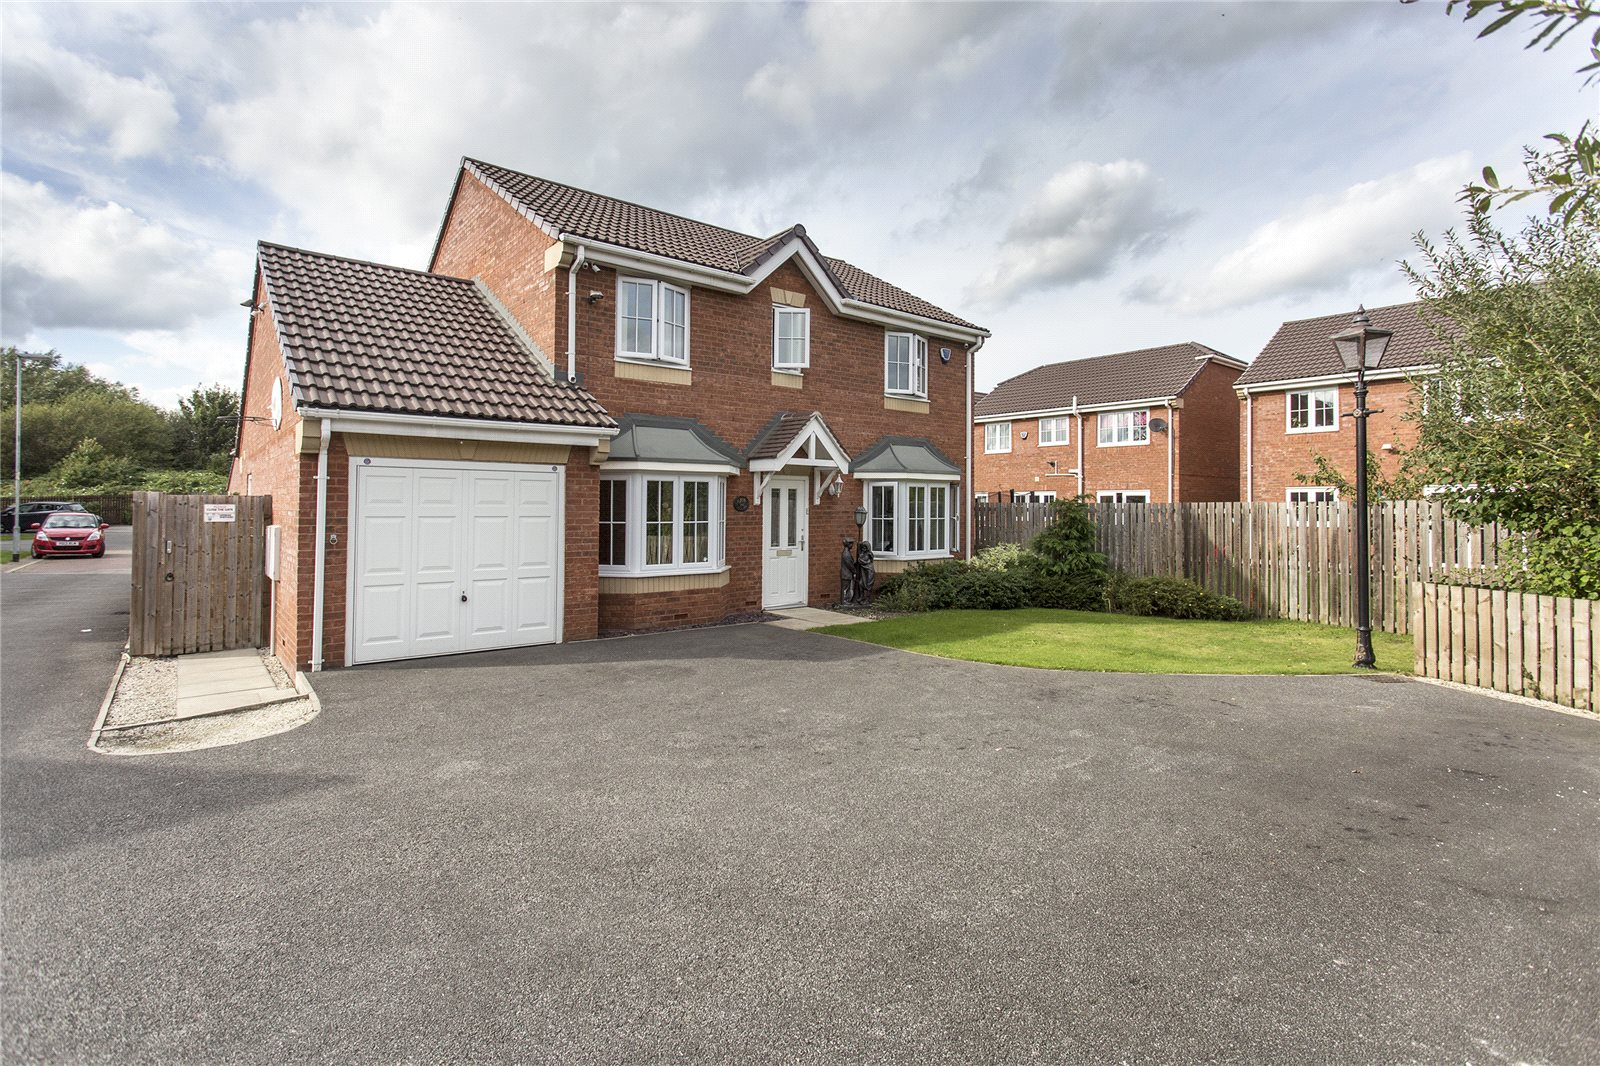 Whitegates Mirfield 4 Bedroom House For Sale In Spring